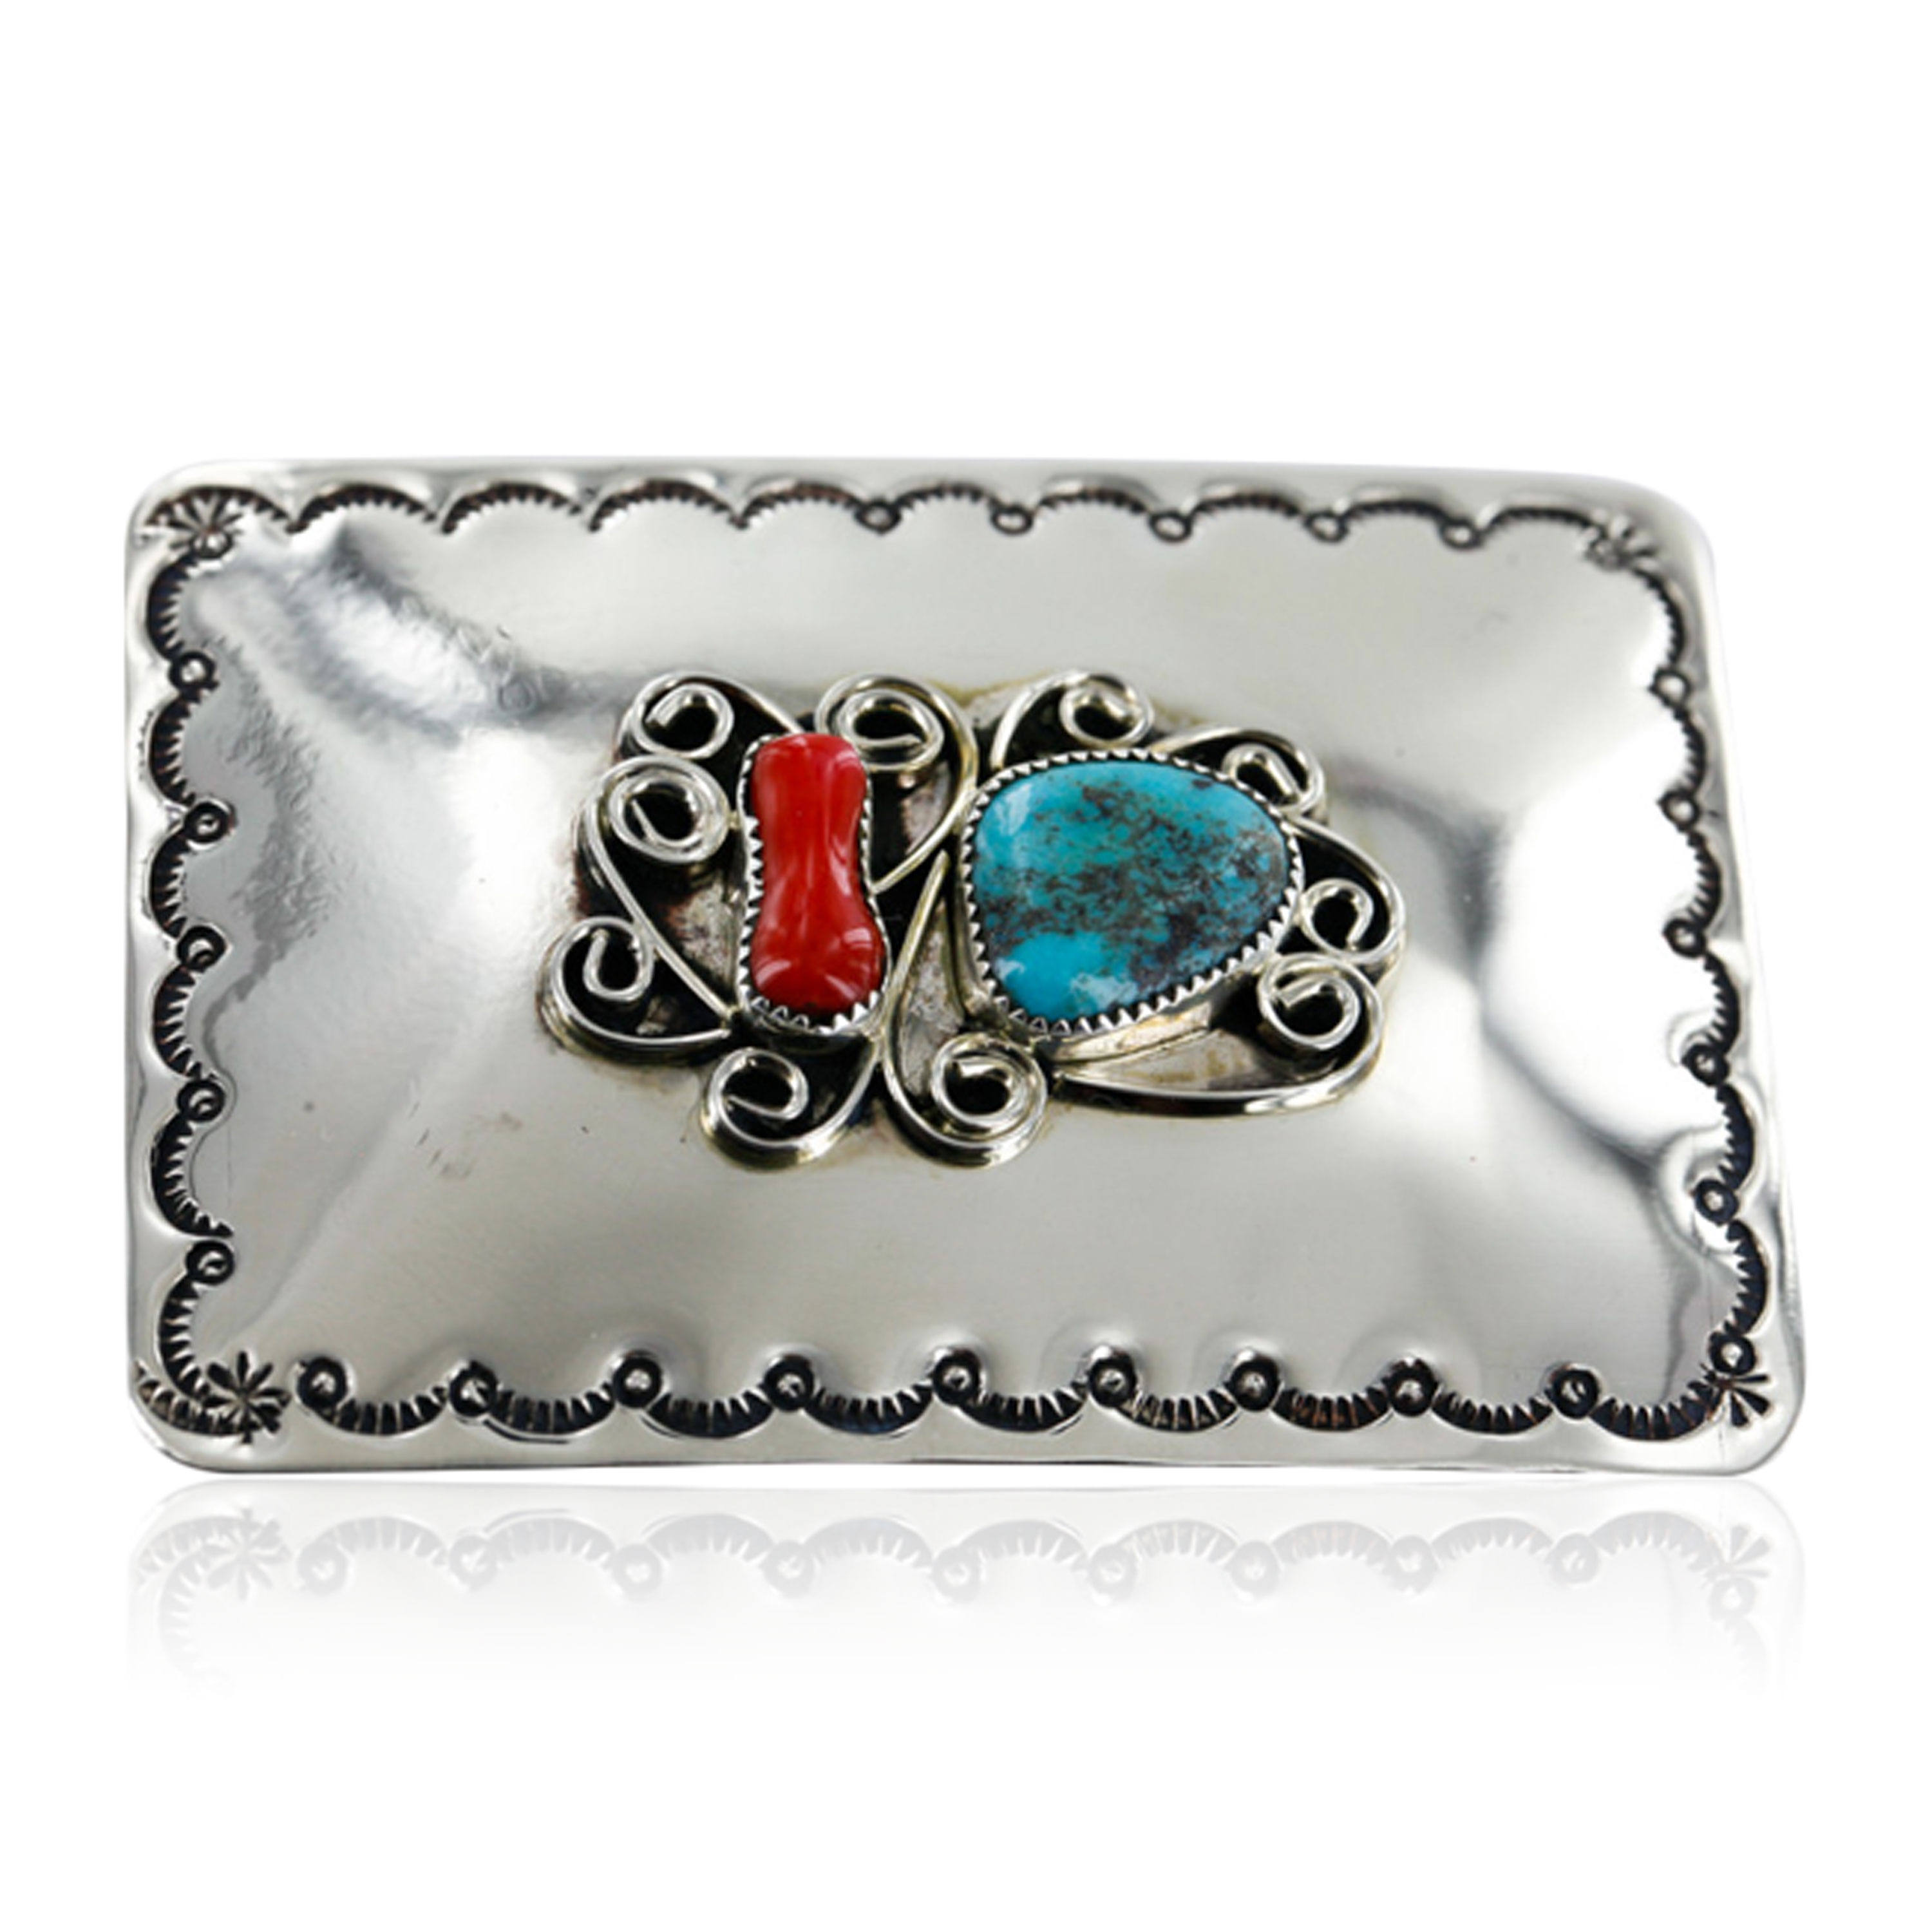 Certified Authentic Navajo Nickel Turquoise Native American Buckle 1192-3 All Products 390957619969 1192-3 (by LomaSiiva)